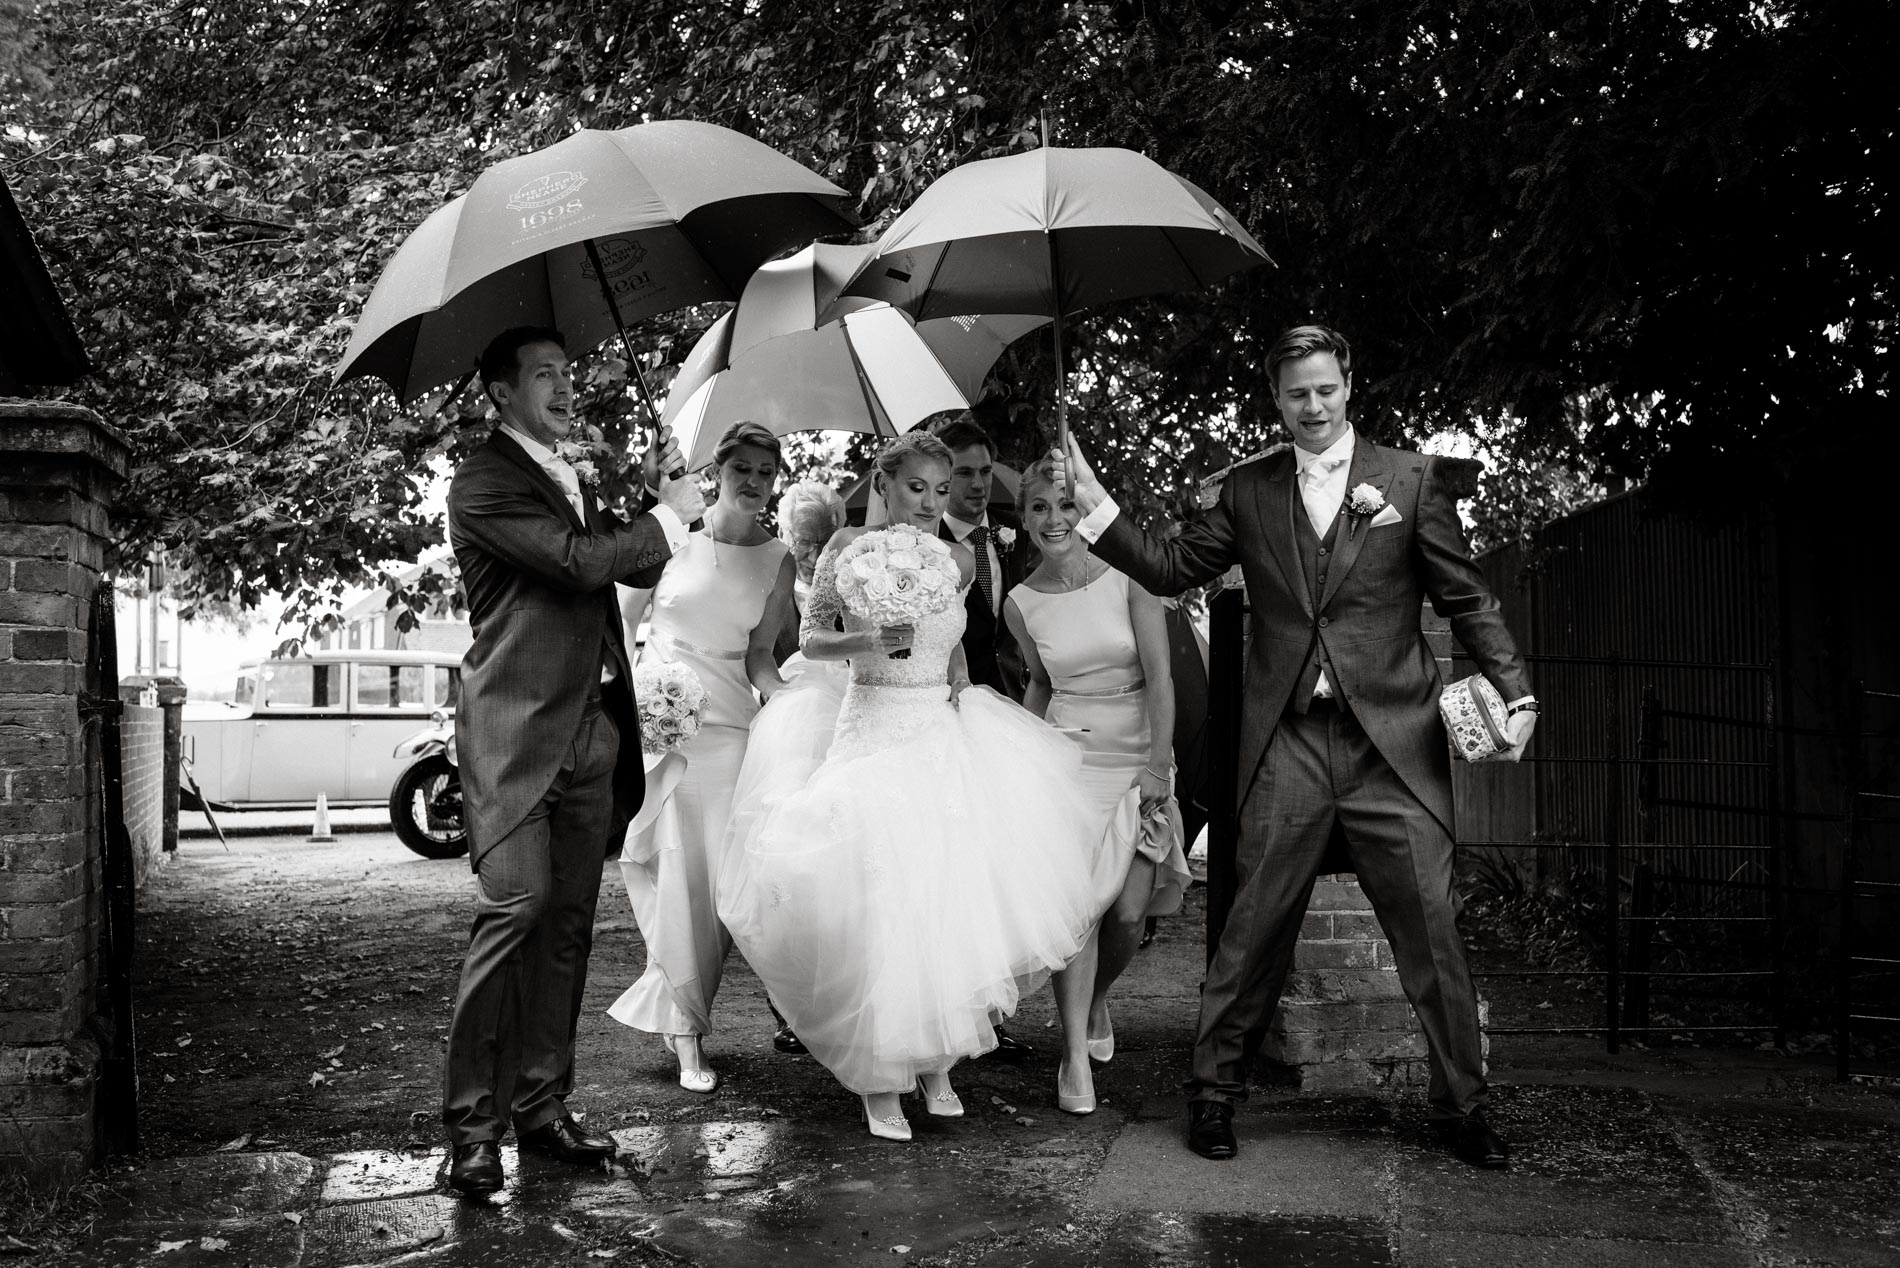 Smarden Church Kent wedding. Rainy day wedding photography